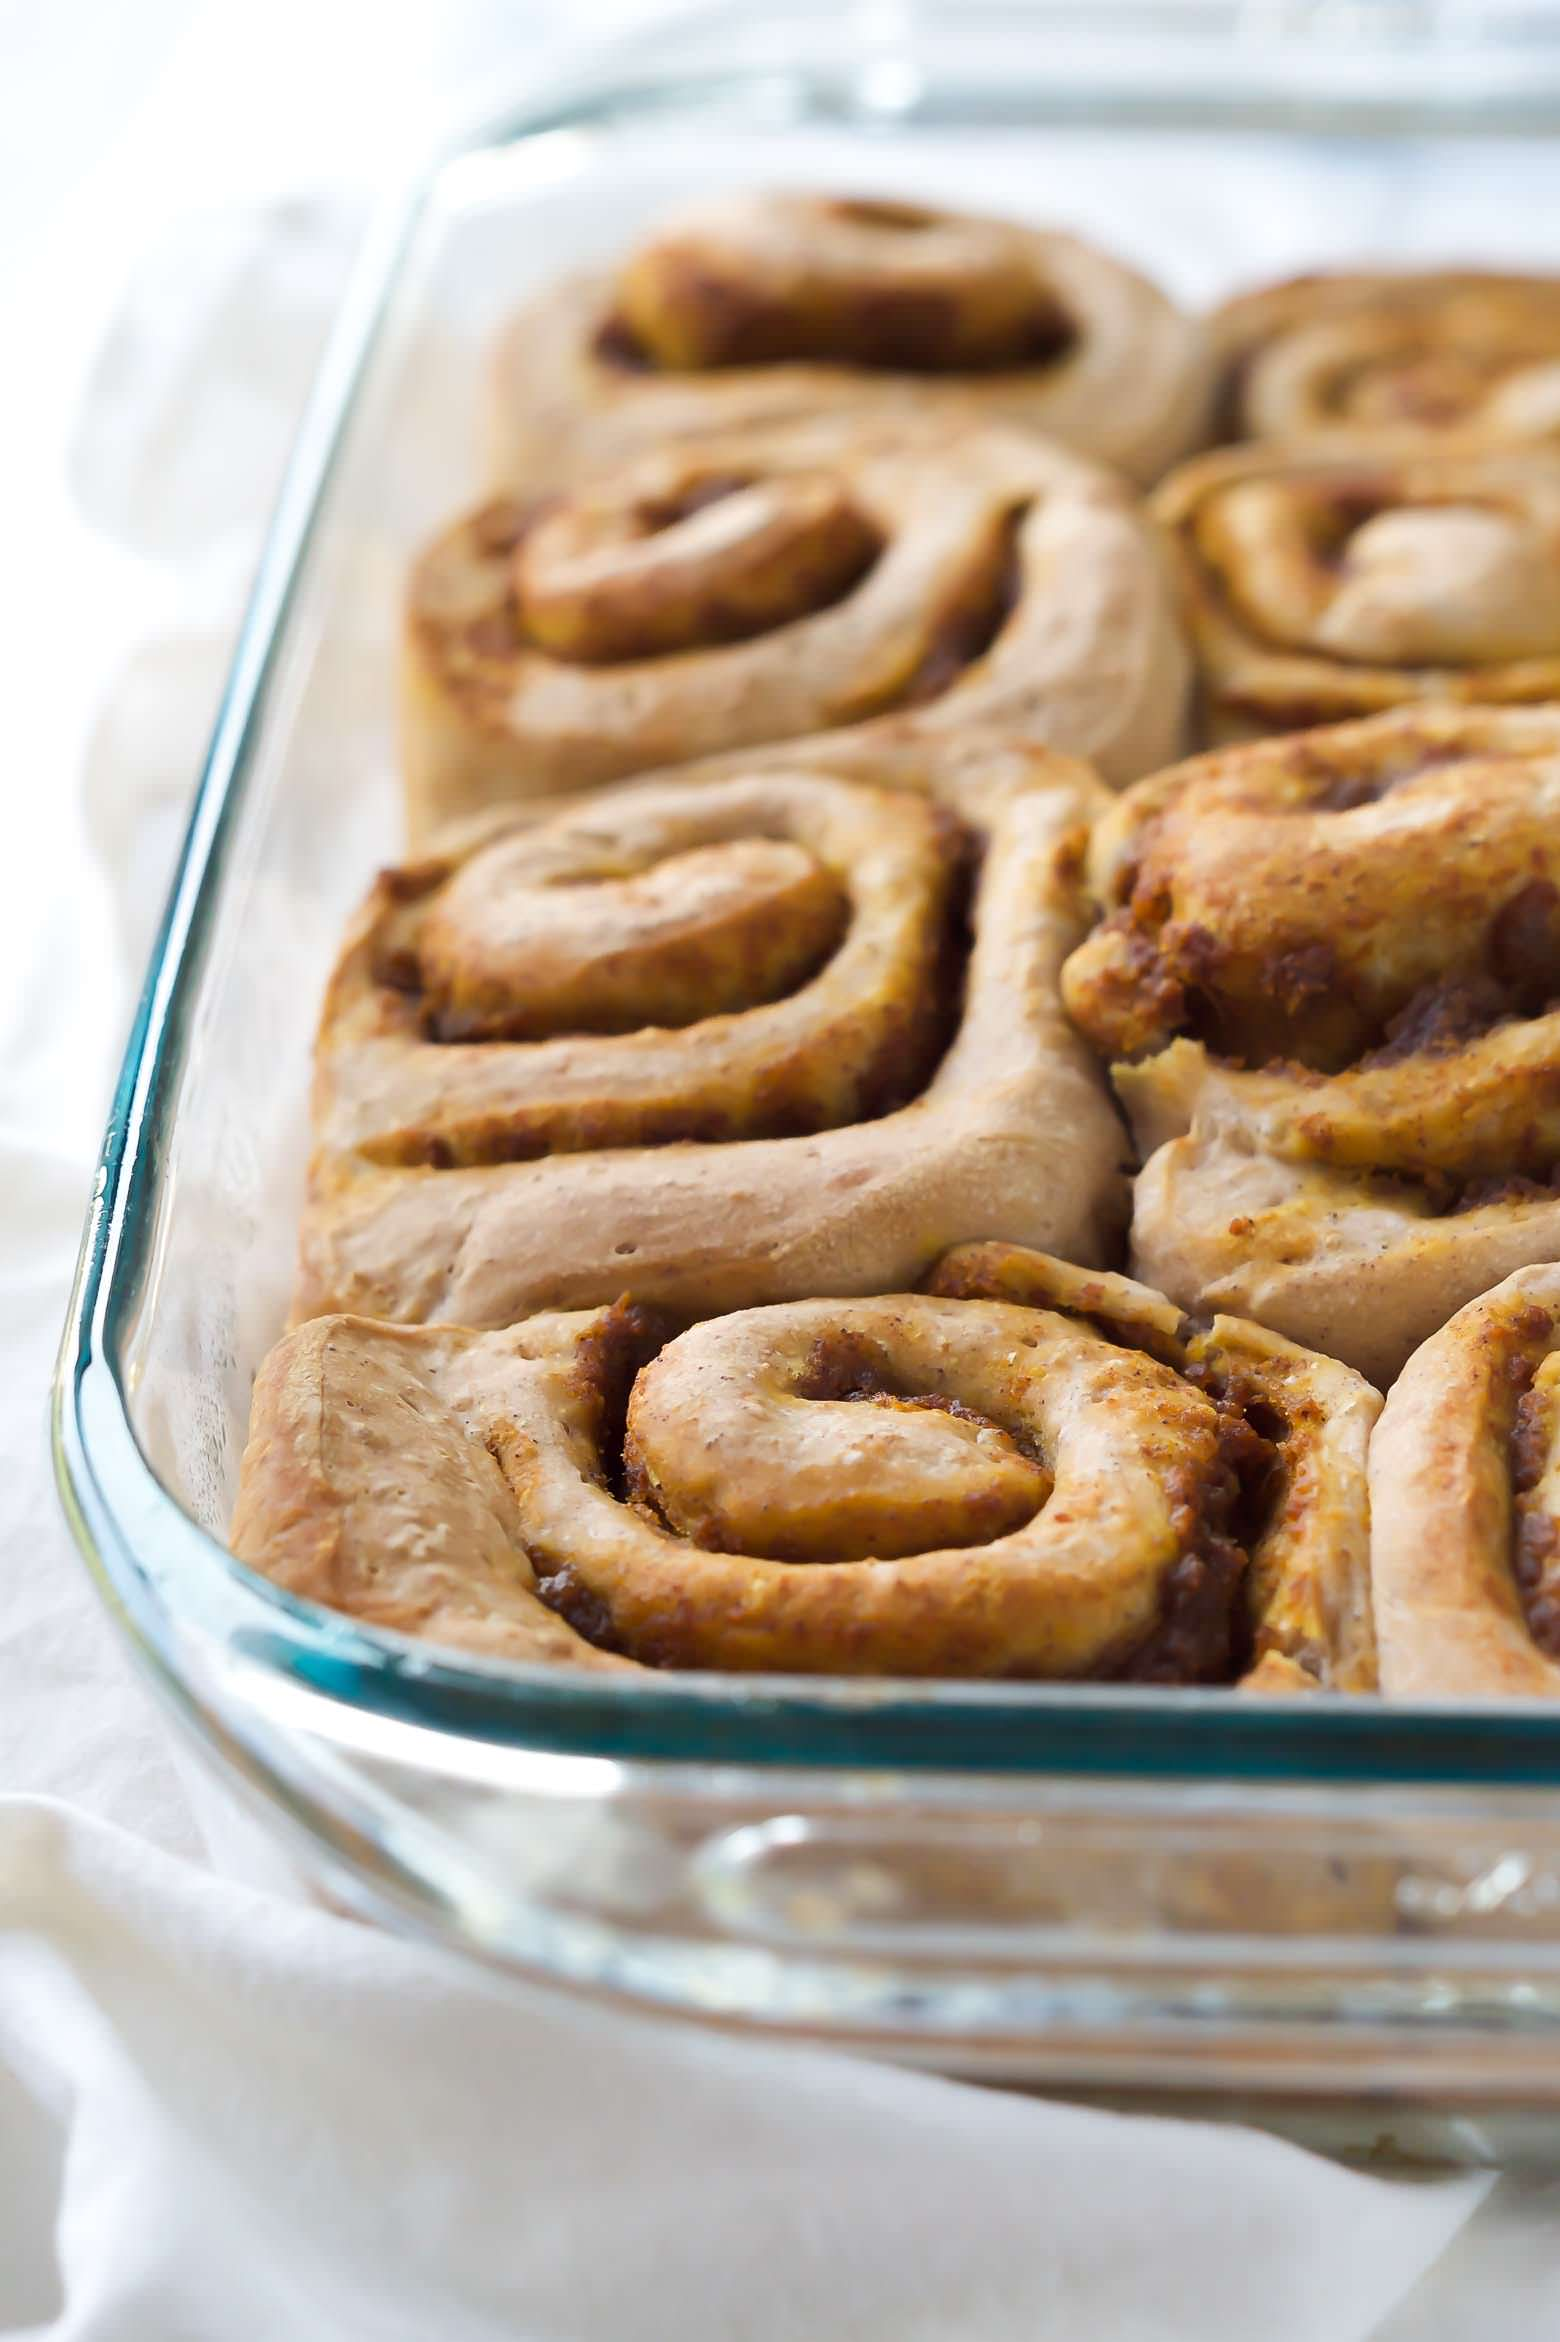 Cake mix cinnamon roll recipes